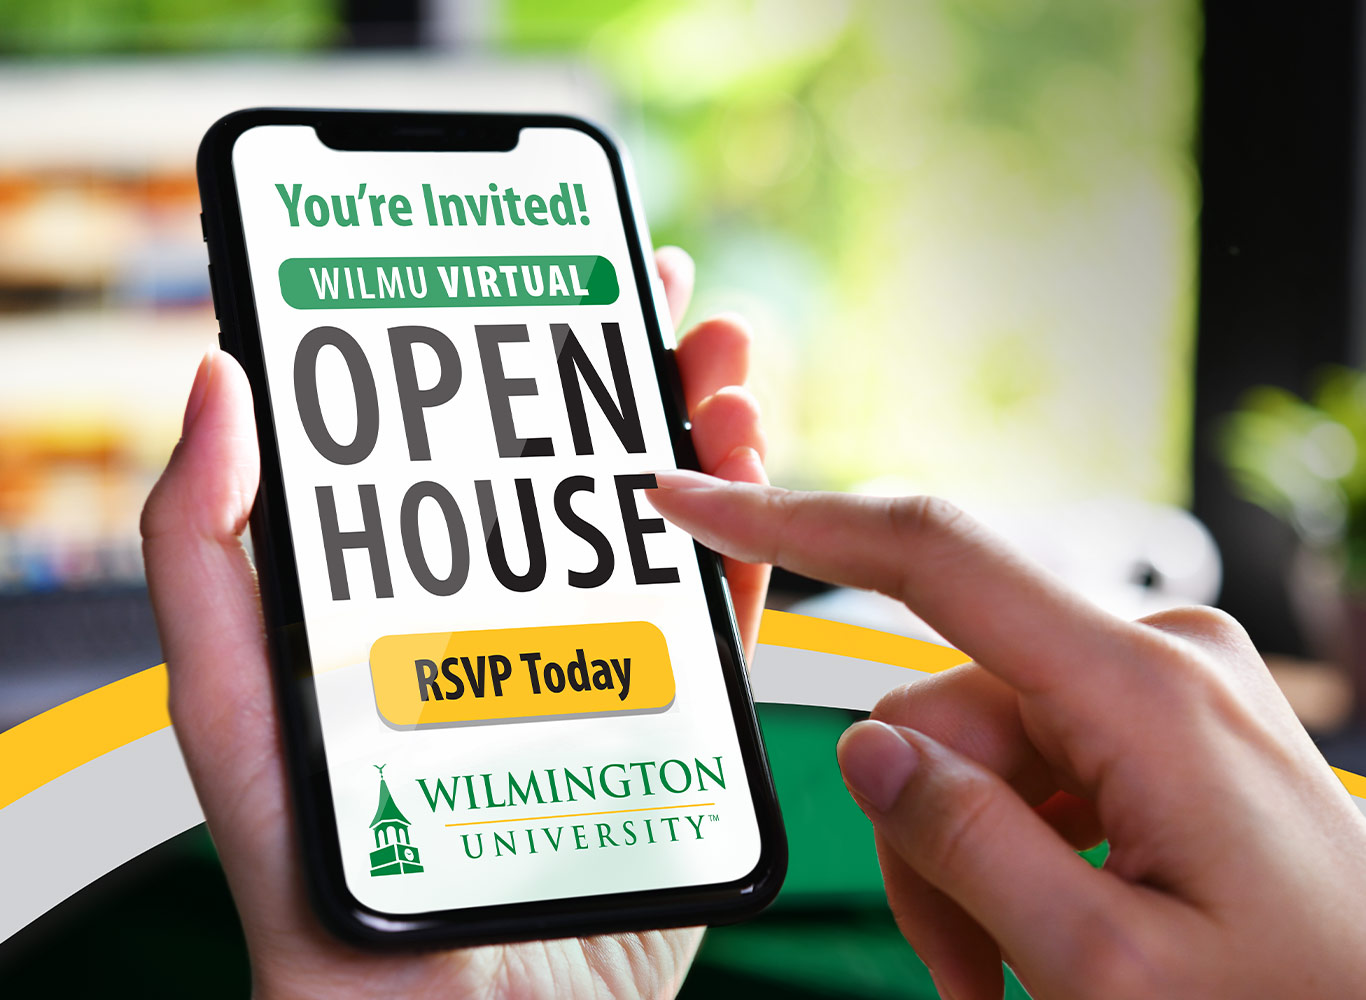 phone screen with open house logo